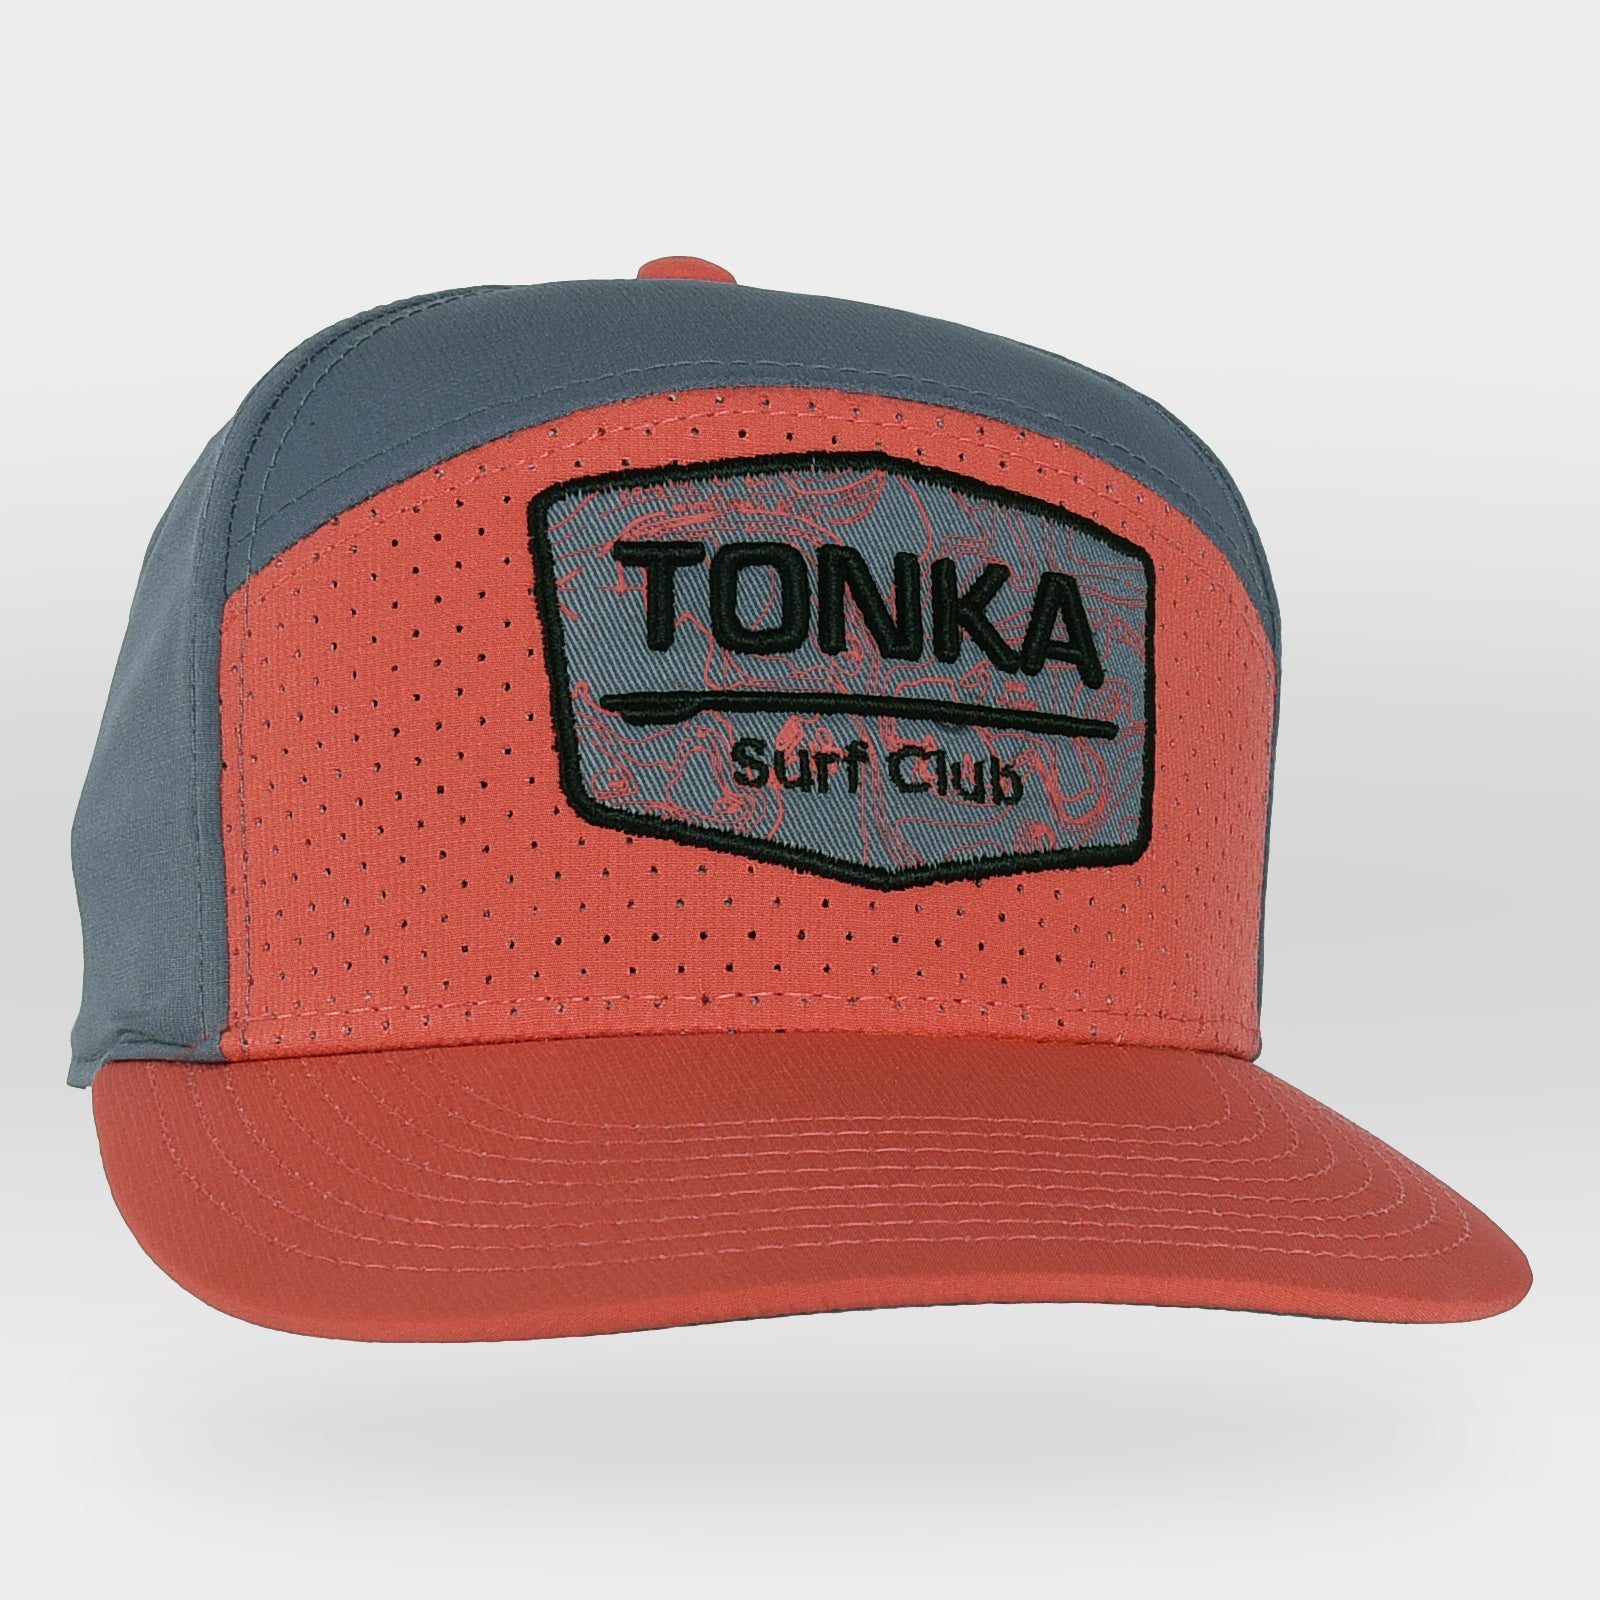 TONKA Surf Club Hat